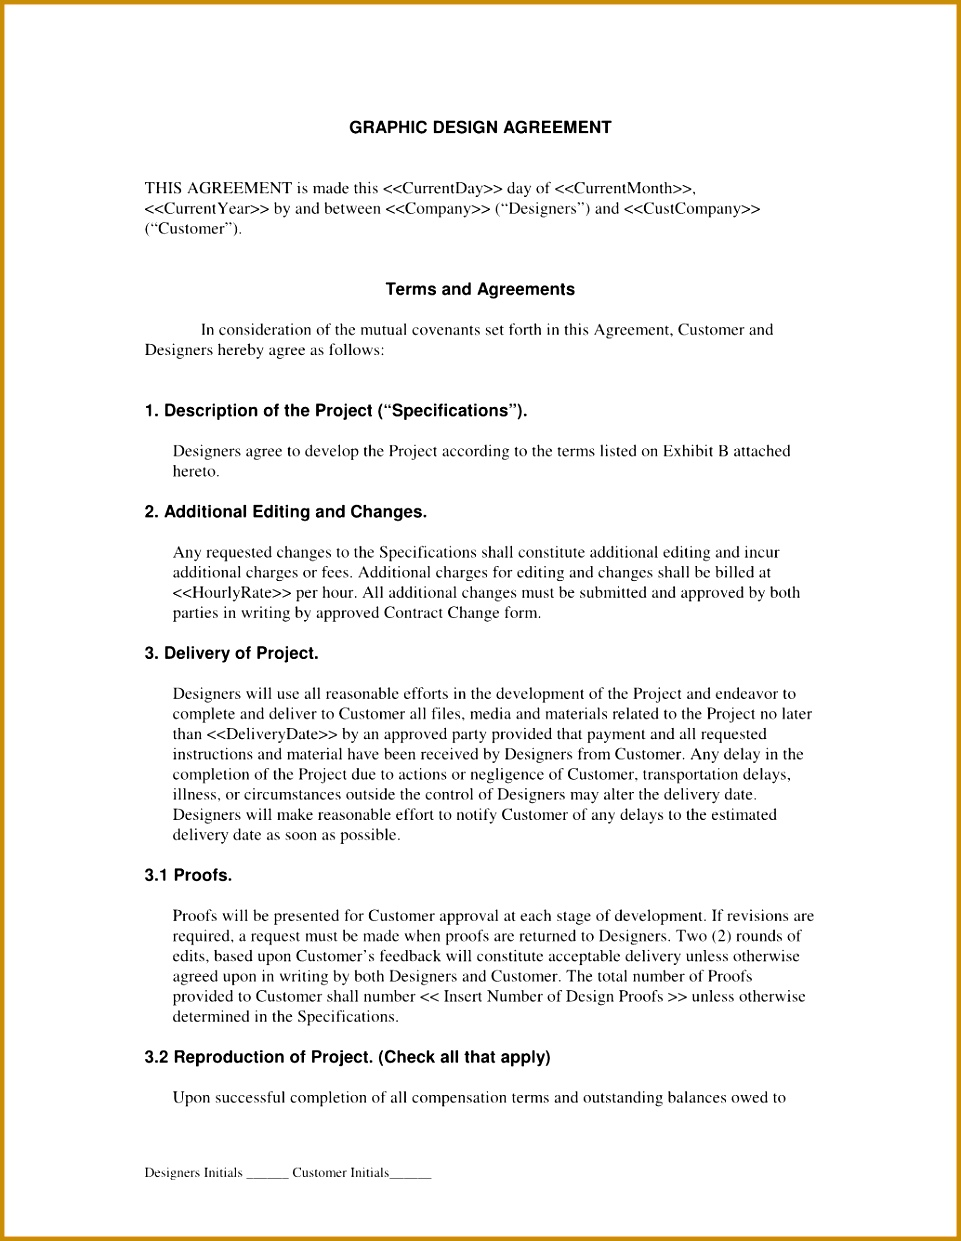 Business Risk Management Plan Template Design Contract Template Cp Graphicdesign Sample 2 Contract Paper Sample Paper Registration Form Template 1241961